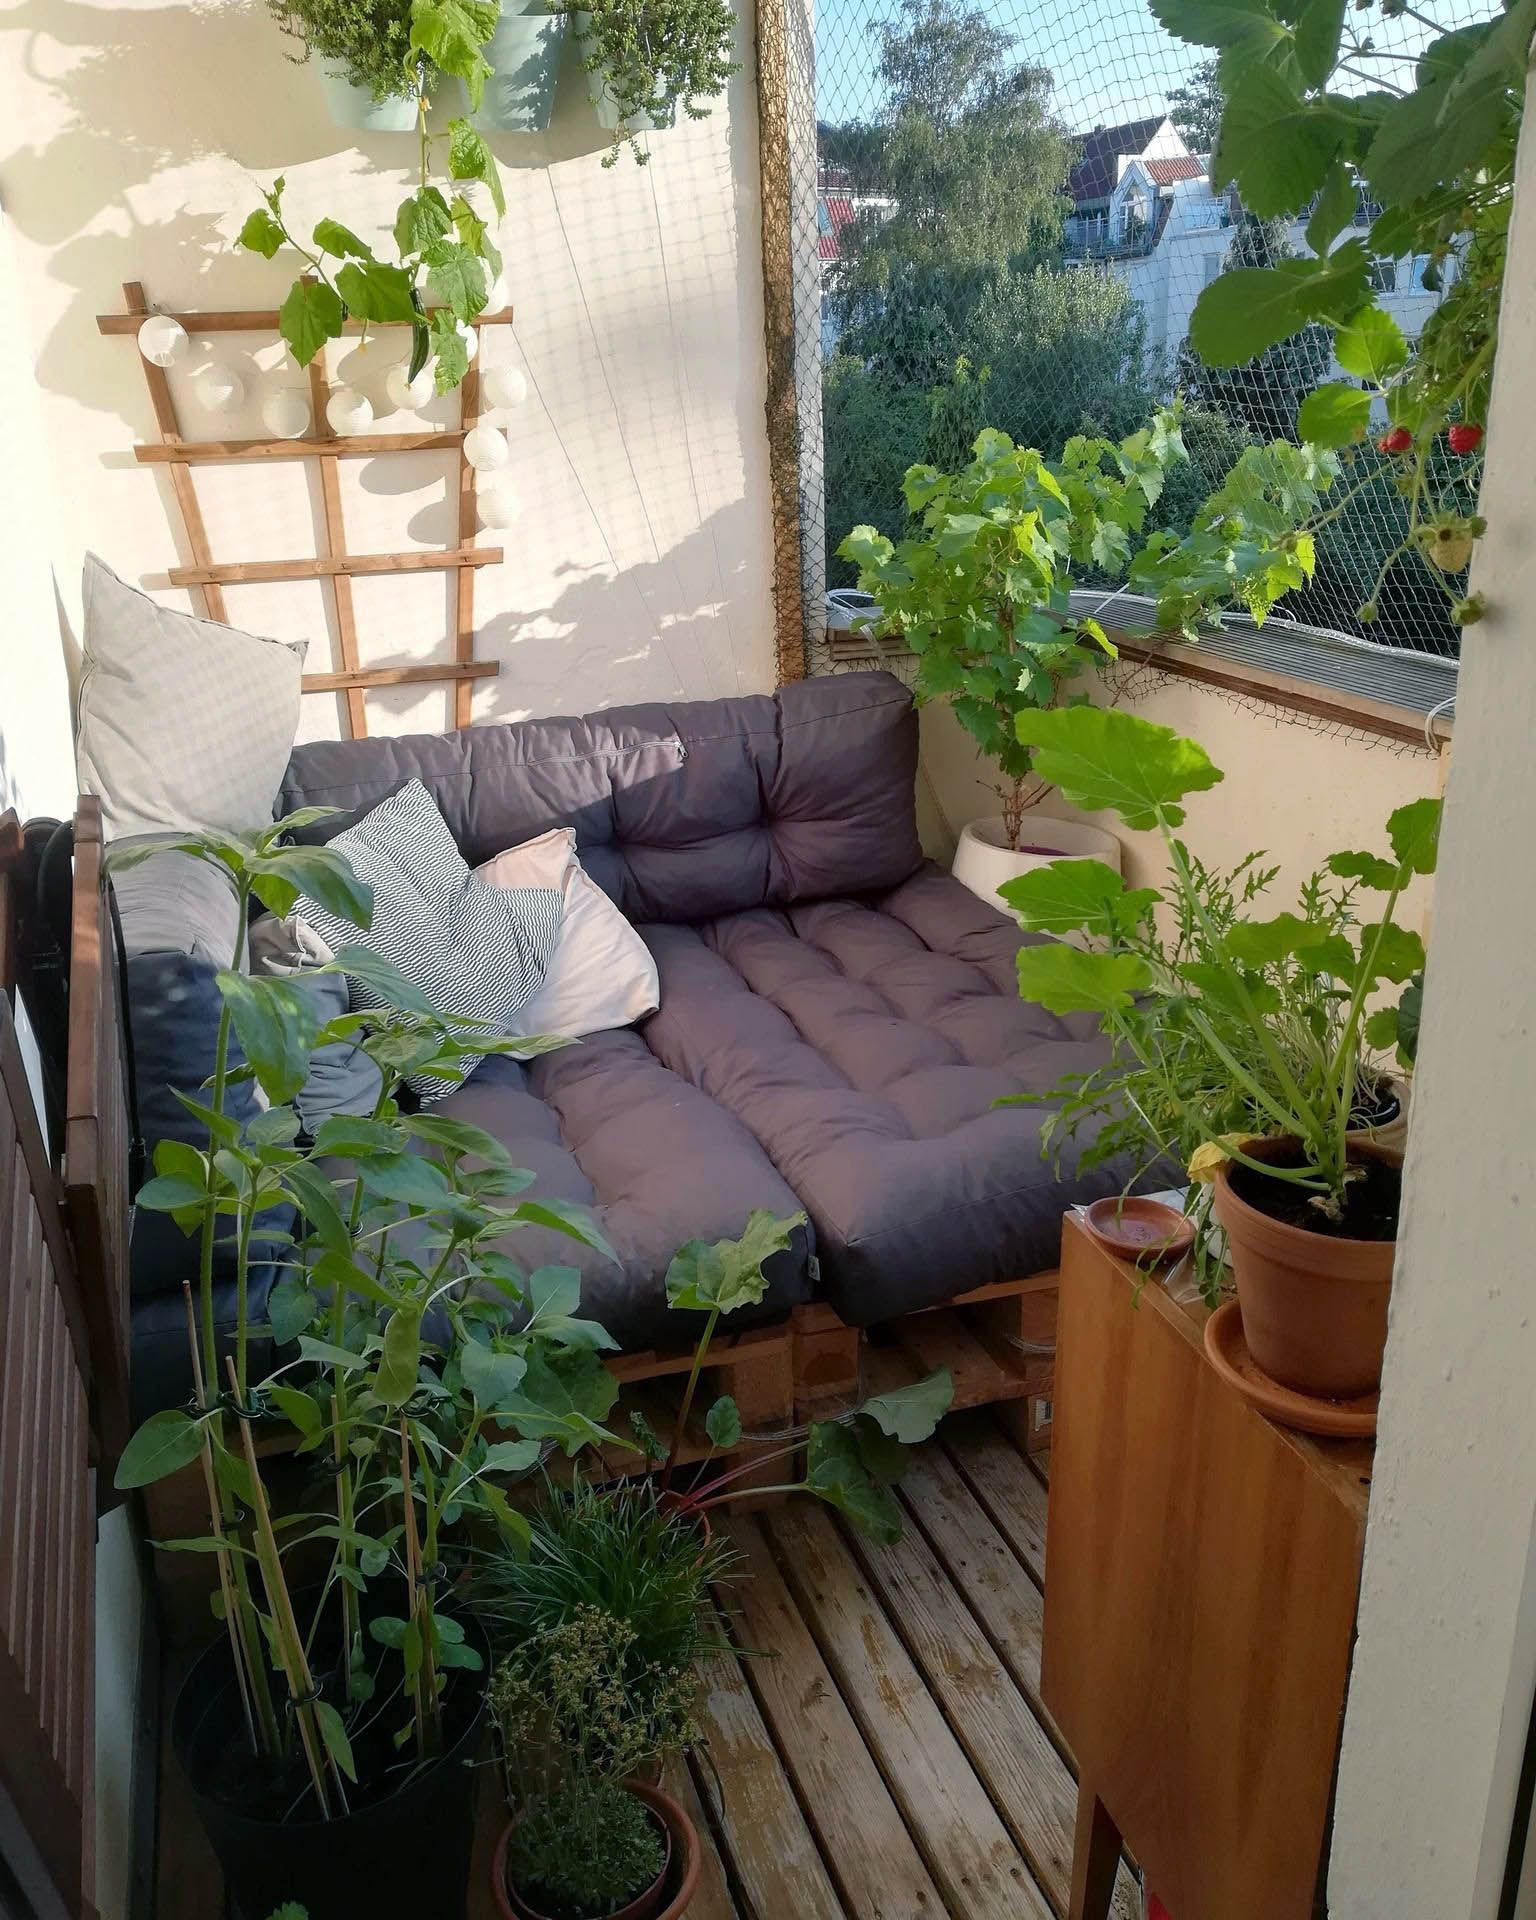 Cool balcony cover ideas exclusive on homesable home decor